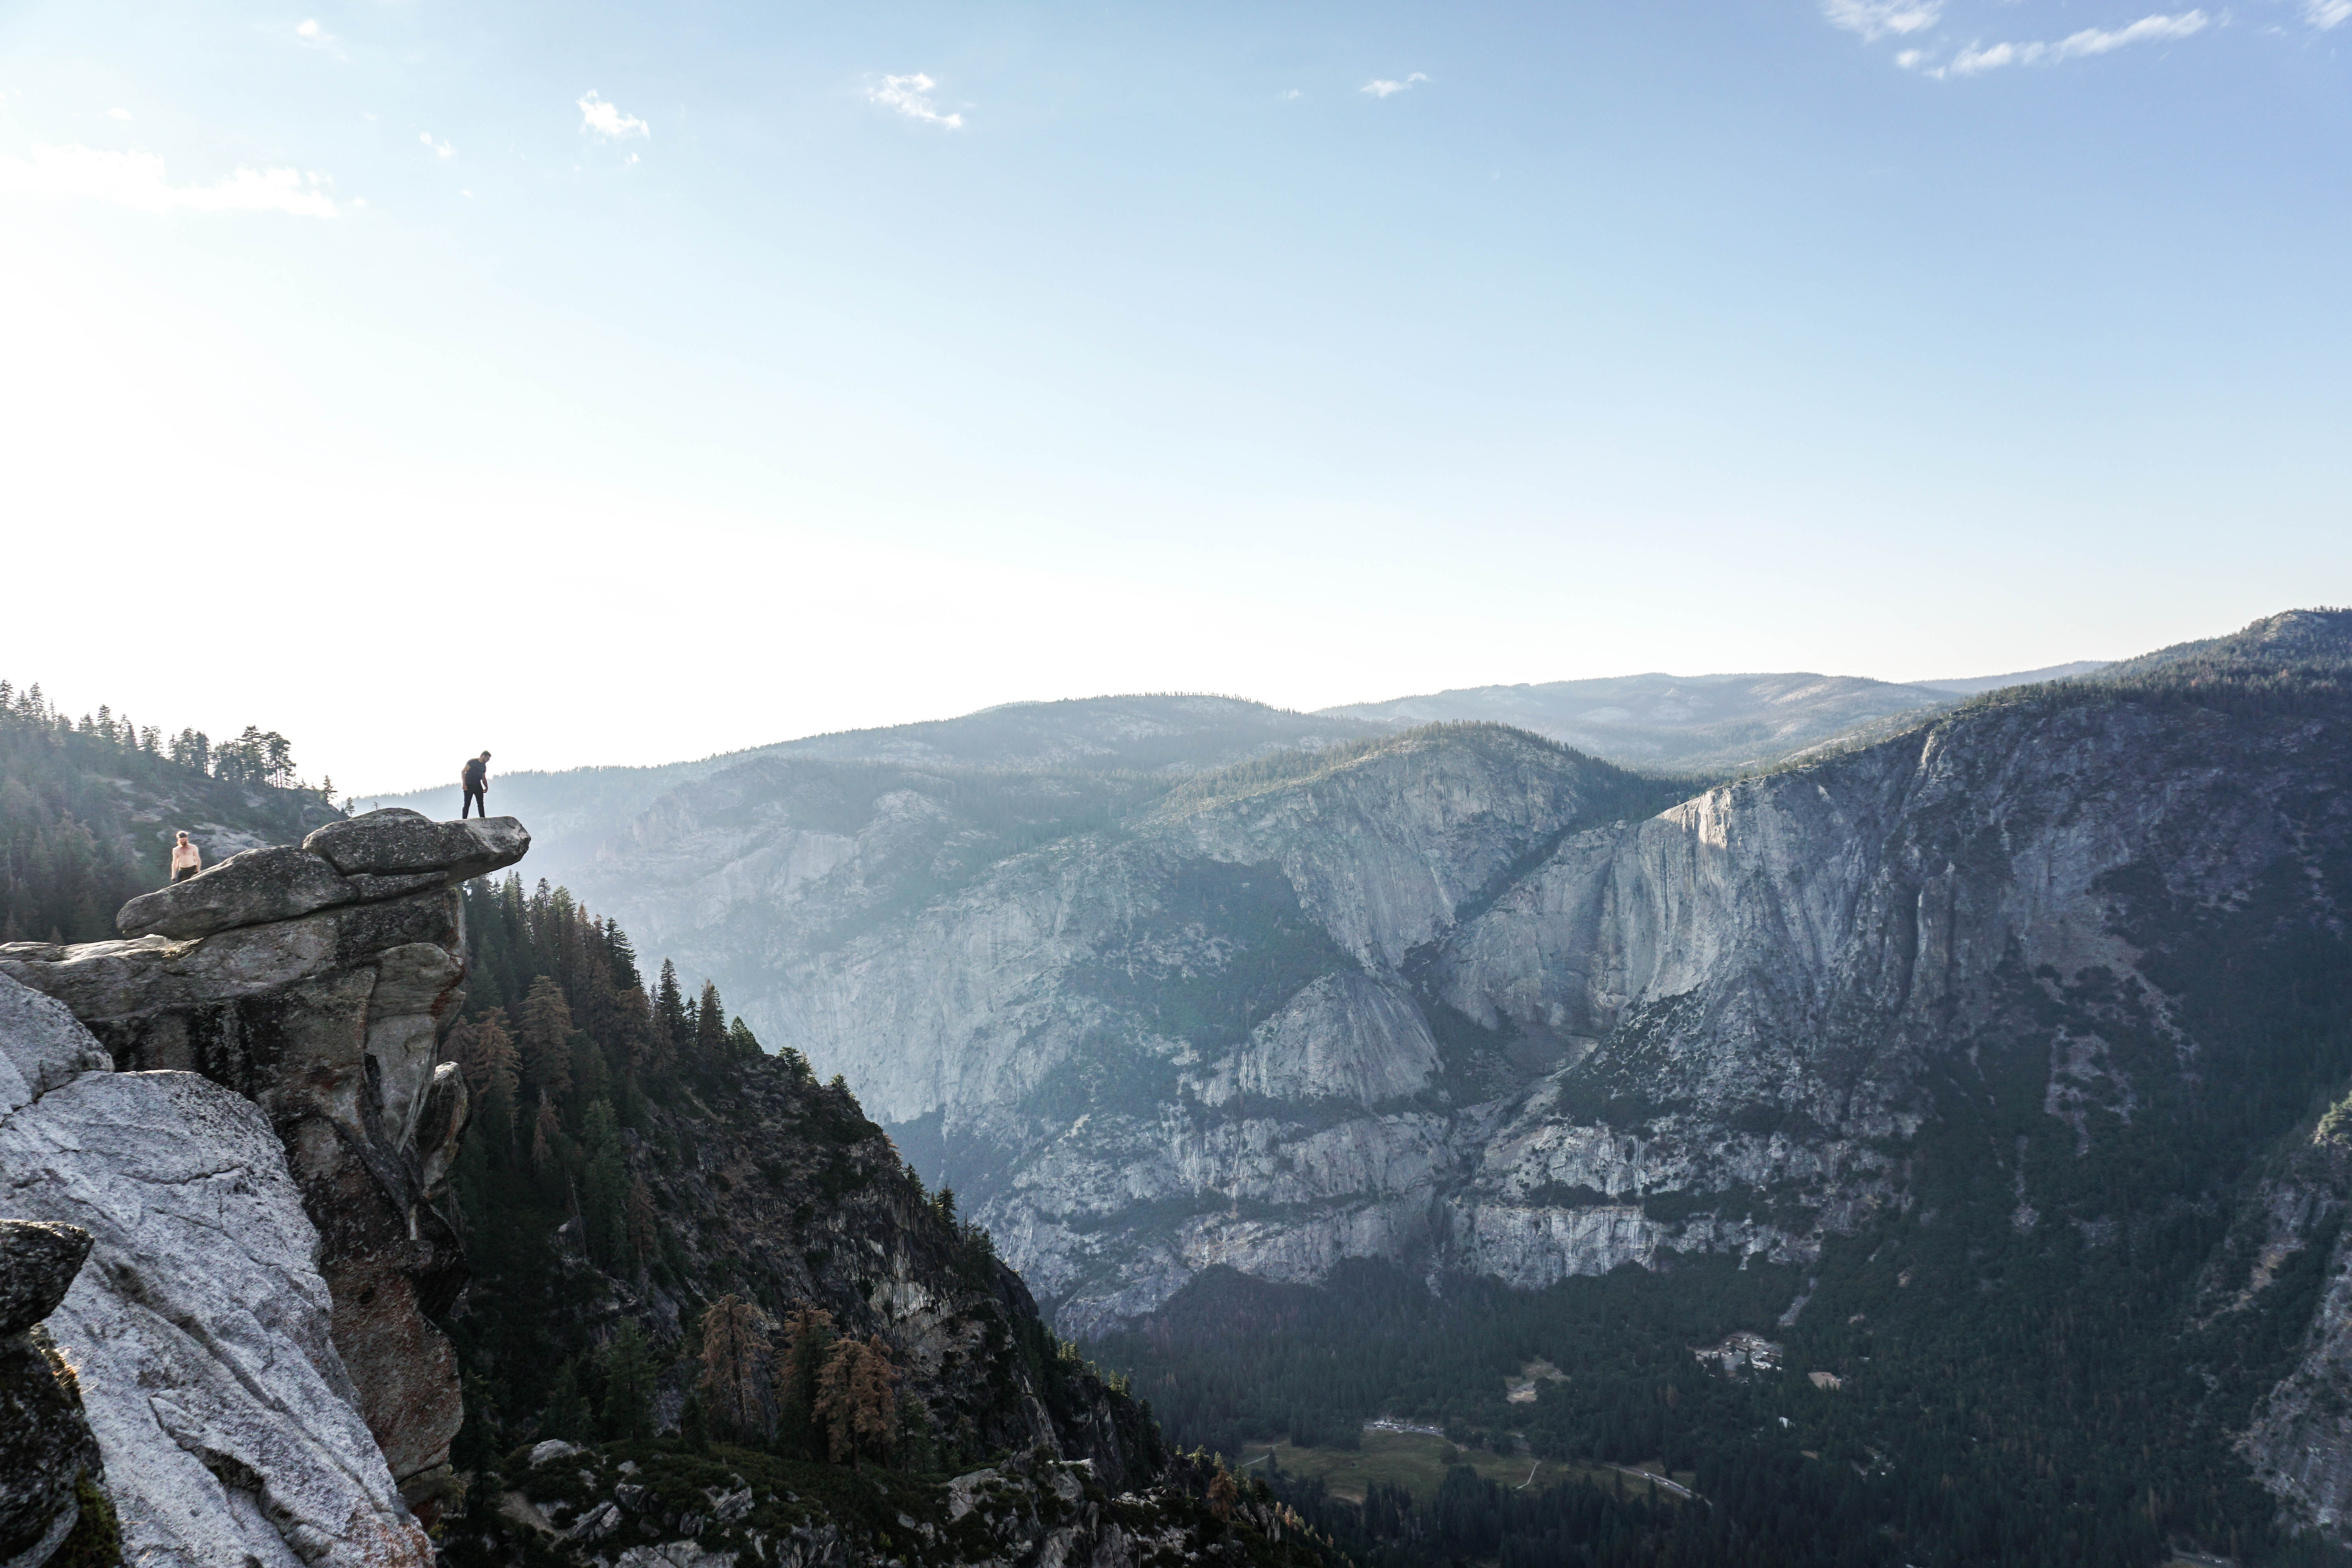 person standing on edge of mountain